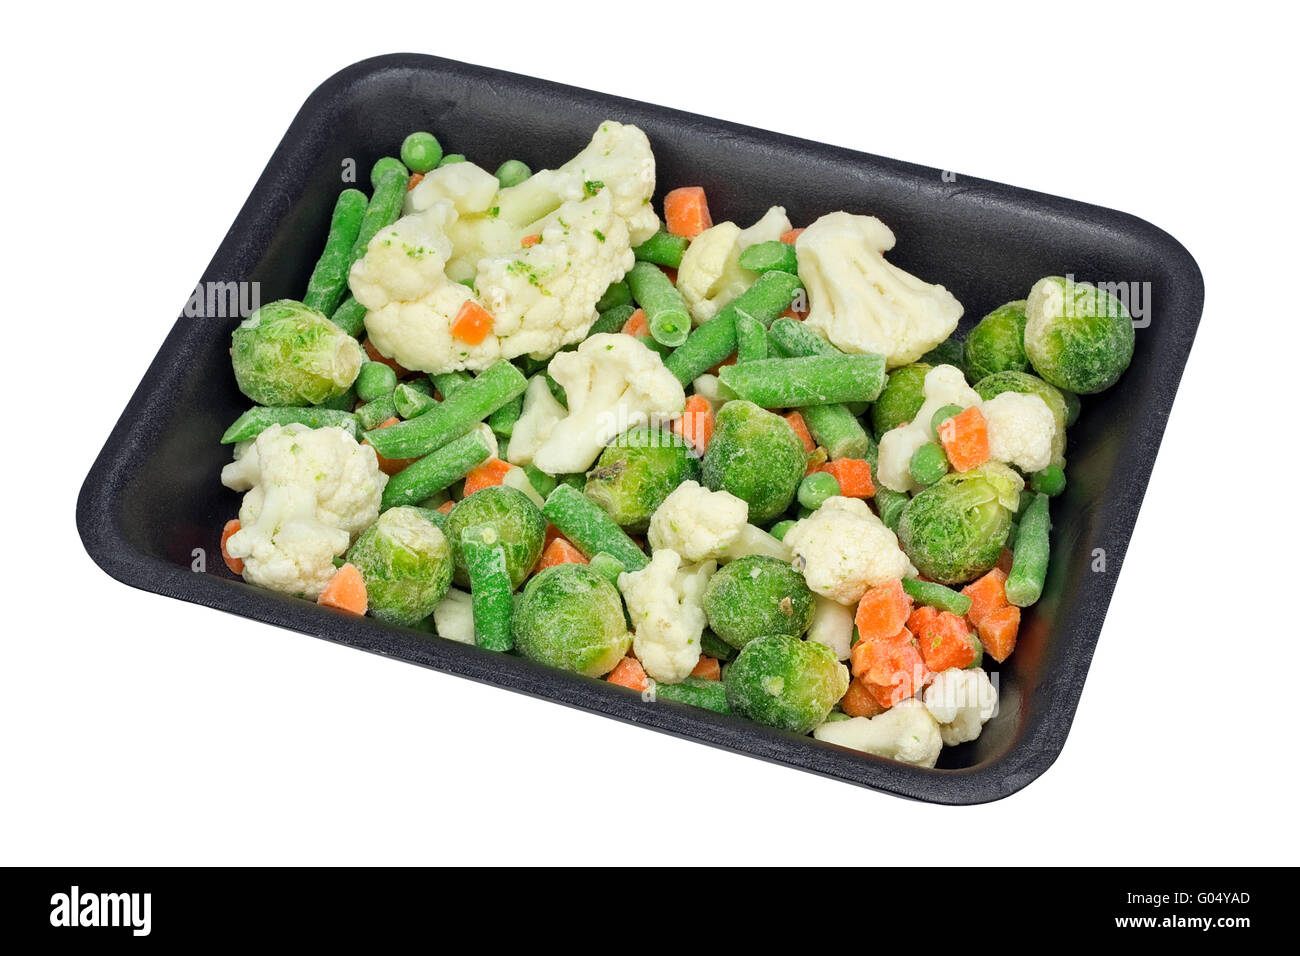 Frozen Mixed Vegetables High Resolution Stock Photography and ...